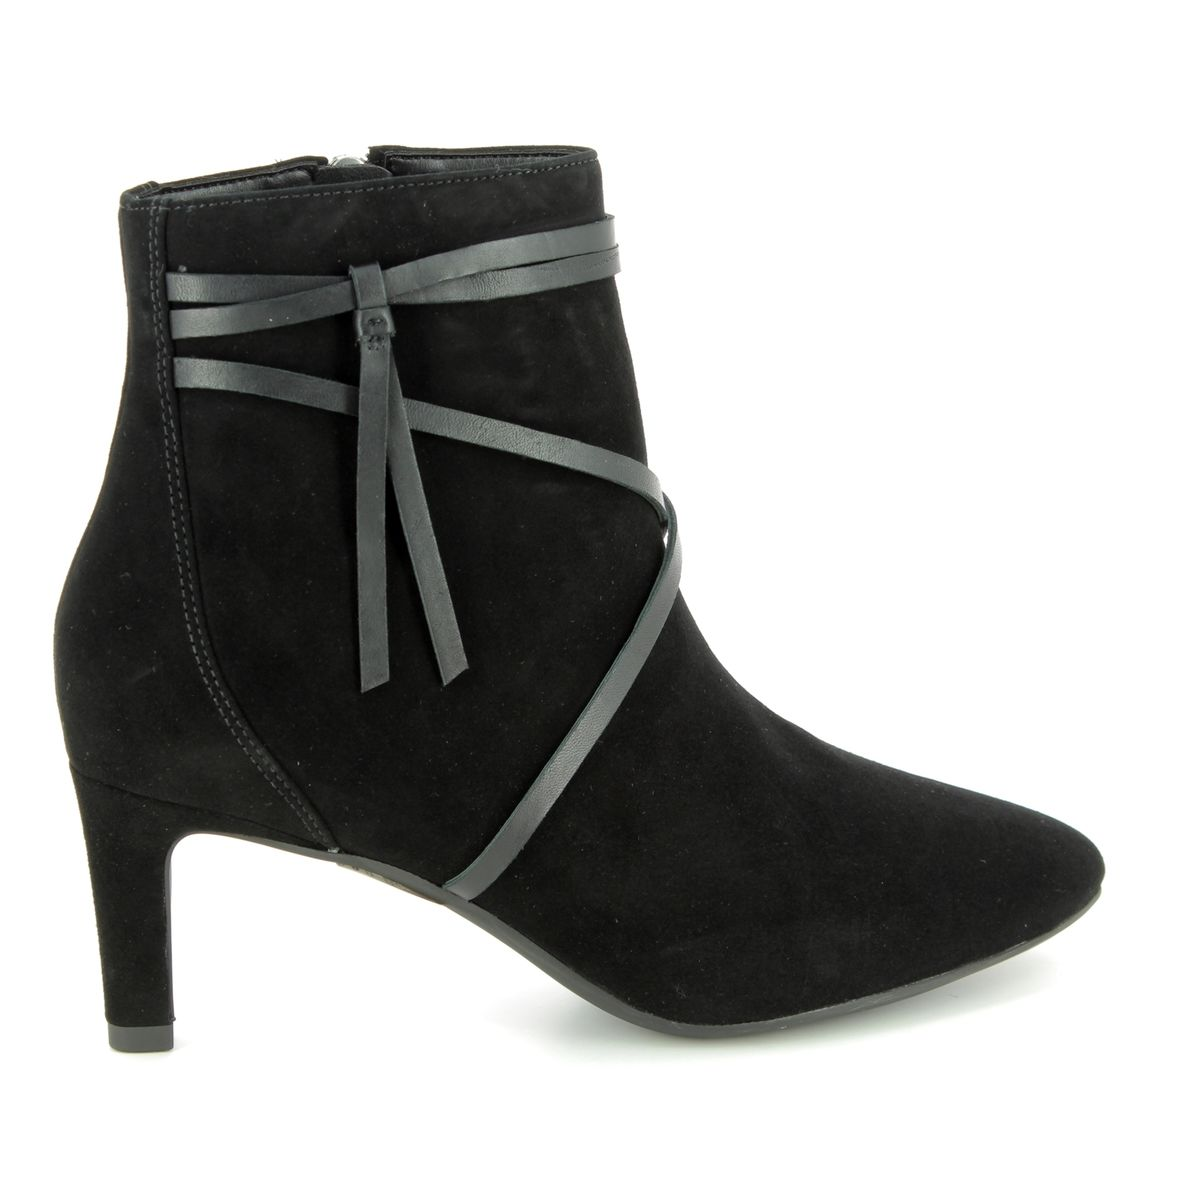 84b3f14ff Clarks Ankle Boots - Black suede or snake - 3669 74D CALLA ASTER